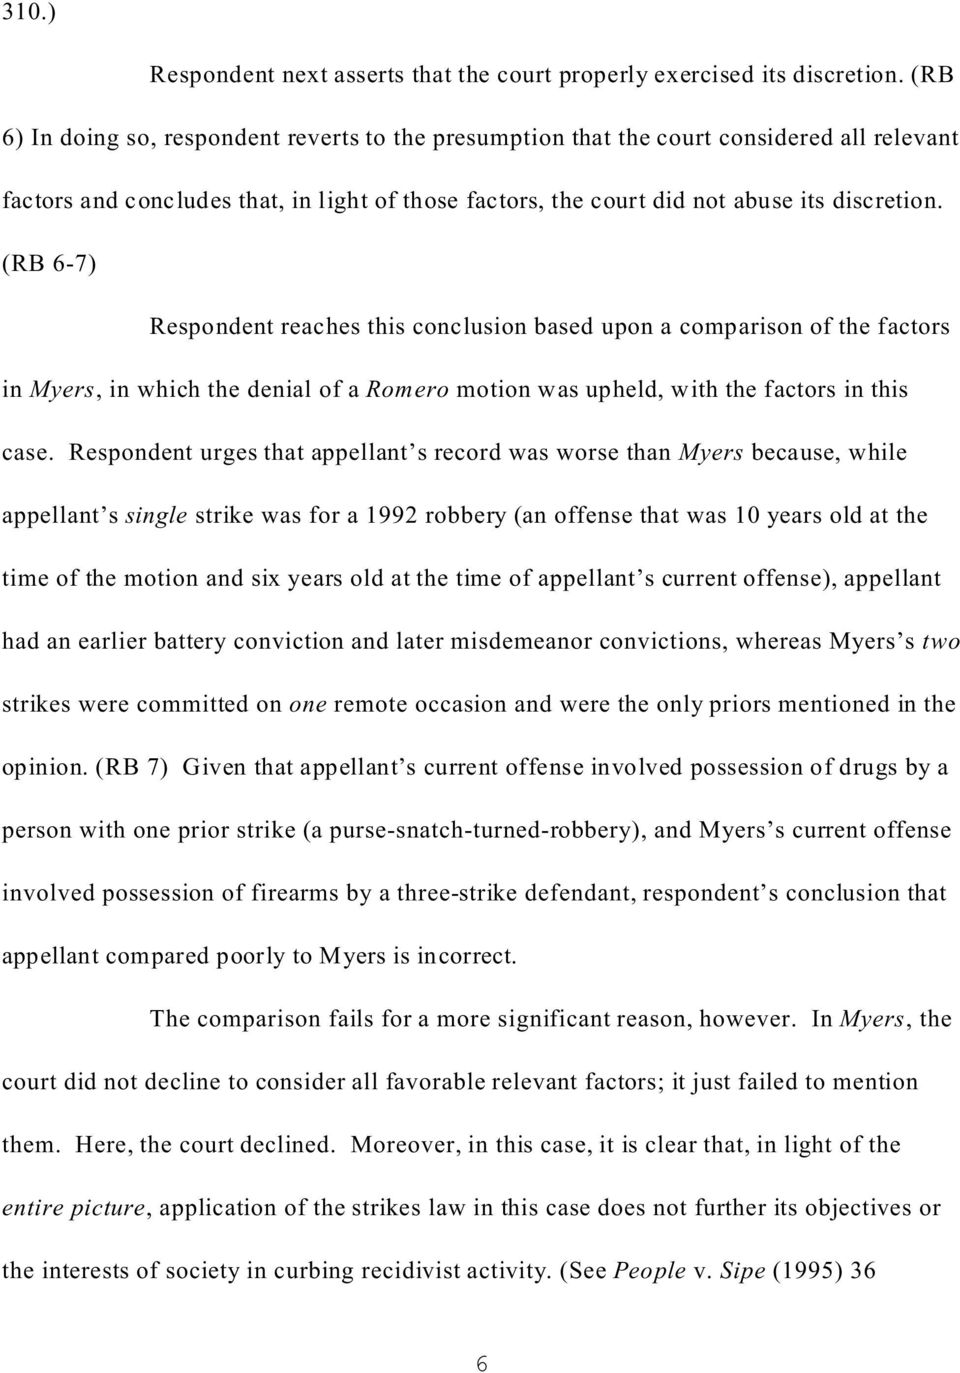 (RB 6-7) Respondent reaches this conclusion based upon a comparison of the factors in Myers, in which the denial of a Romero motion was upheld, with the factors in this case.